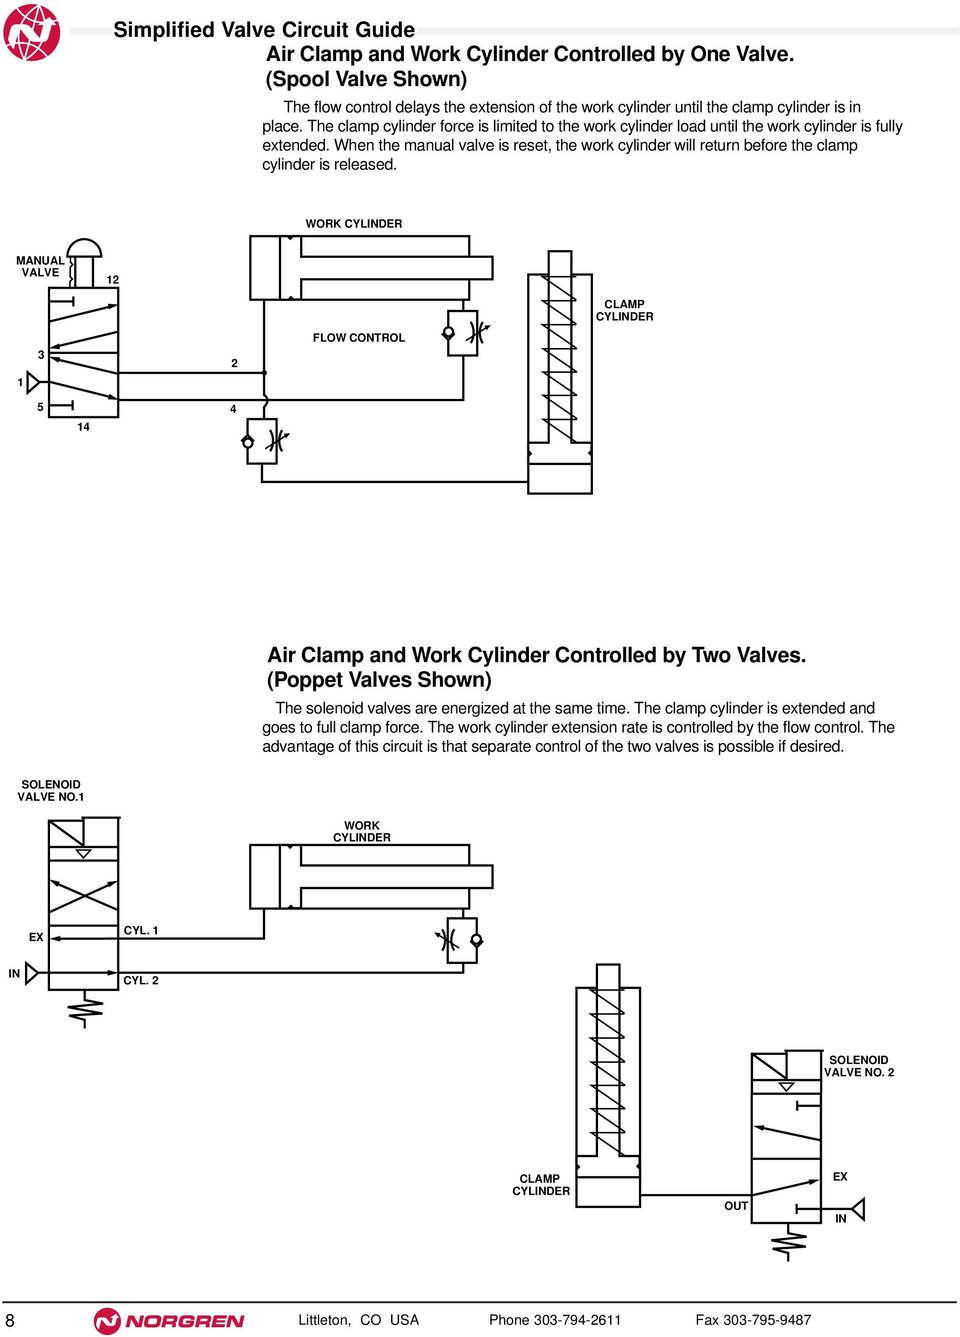 Simplified Valve Circuit Guide Pdf Solenoid Diagram When The Manual Is Reset Work Cylinder Will Return Before Clamp